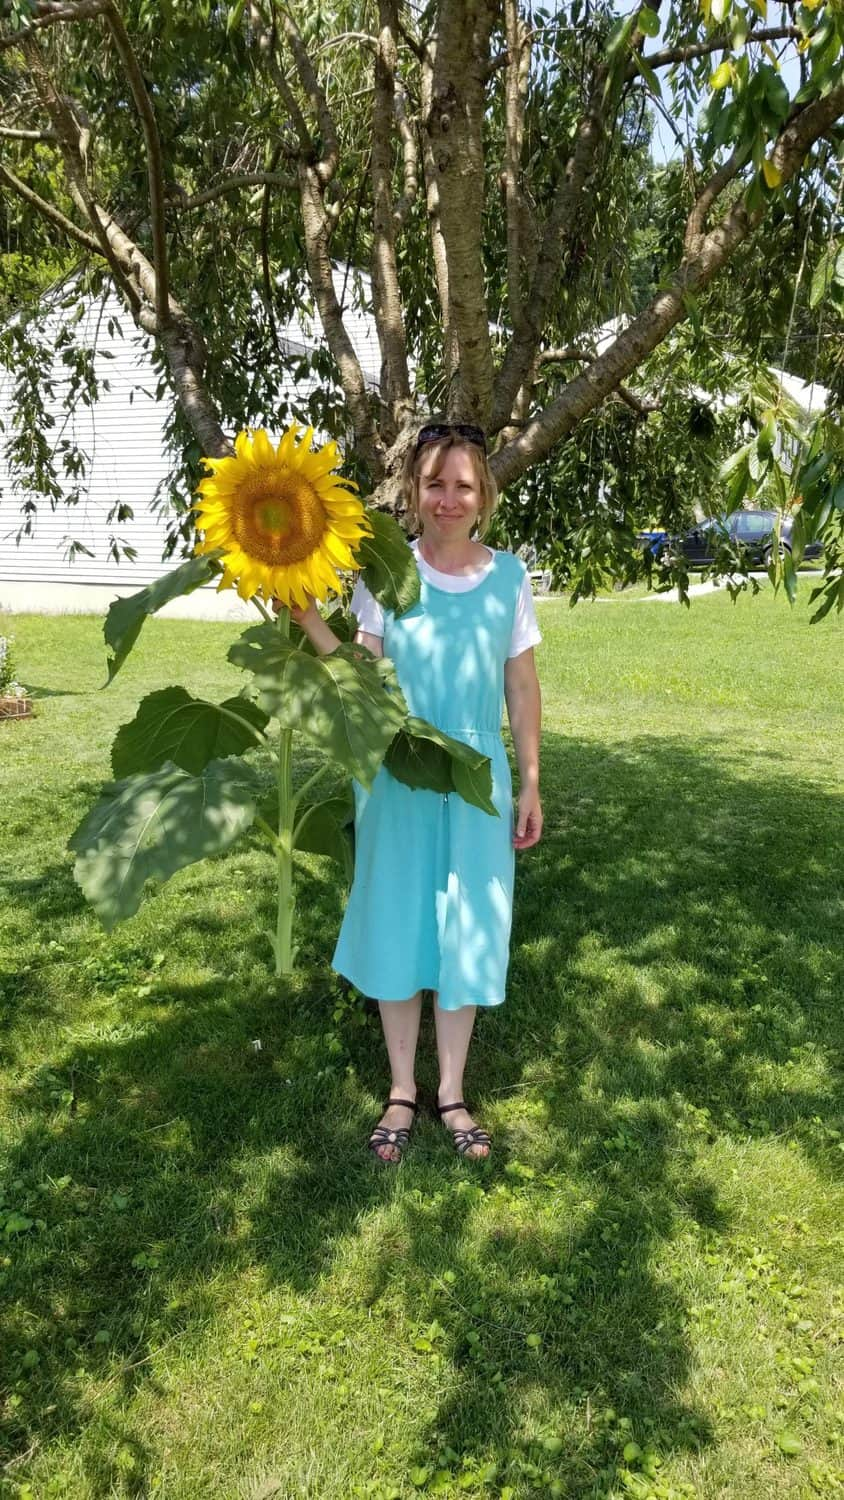 me holding a huge gigantic enormous sunflower that I grew